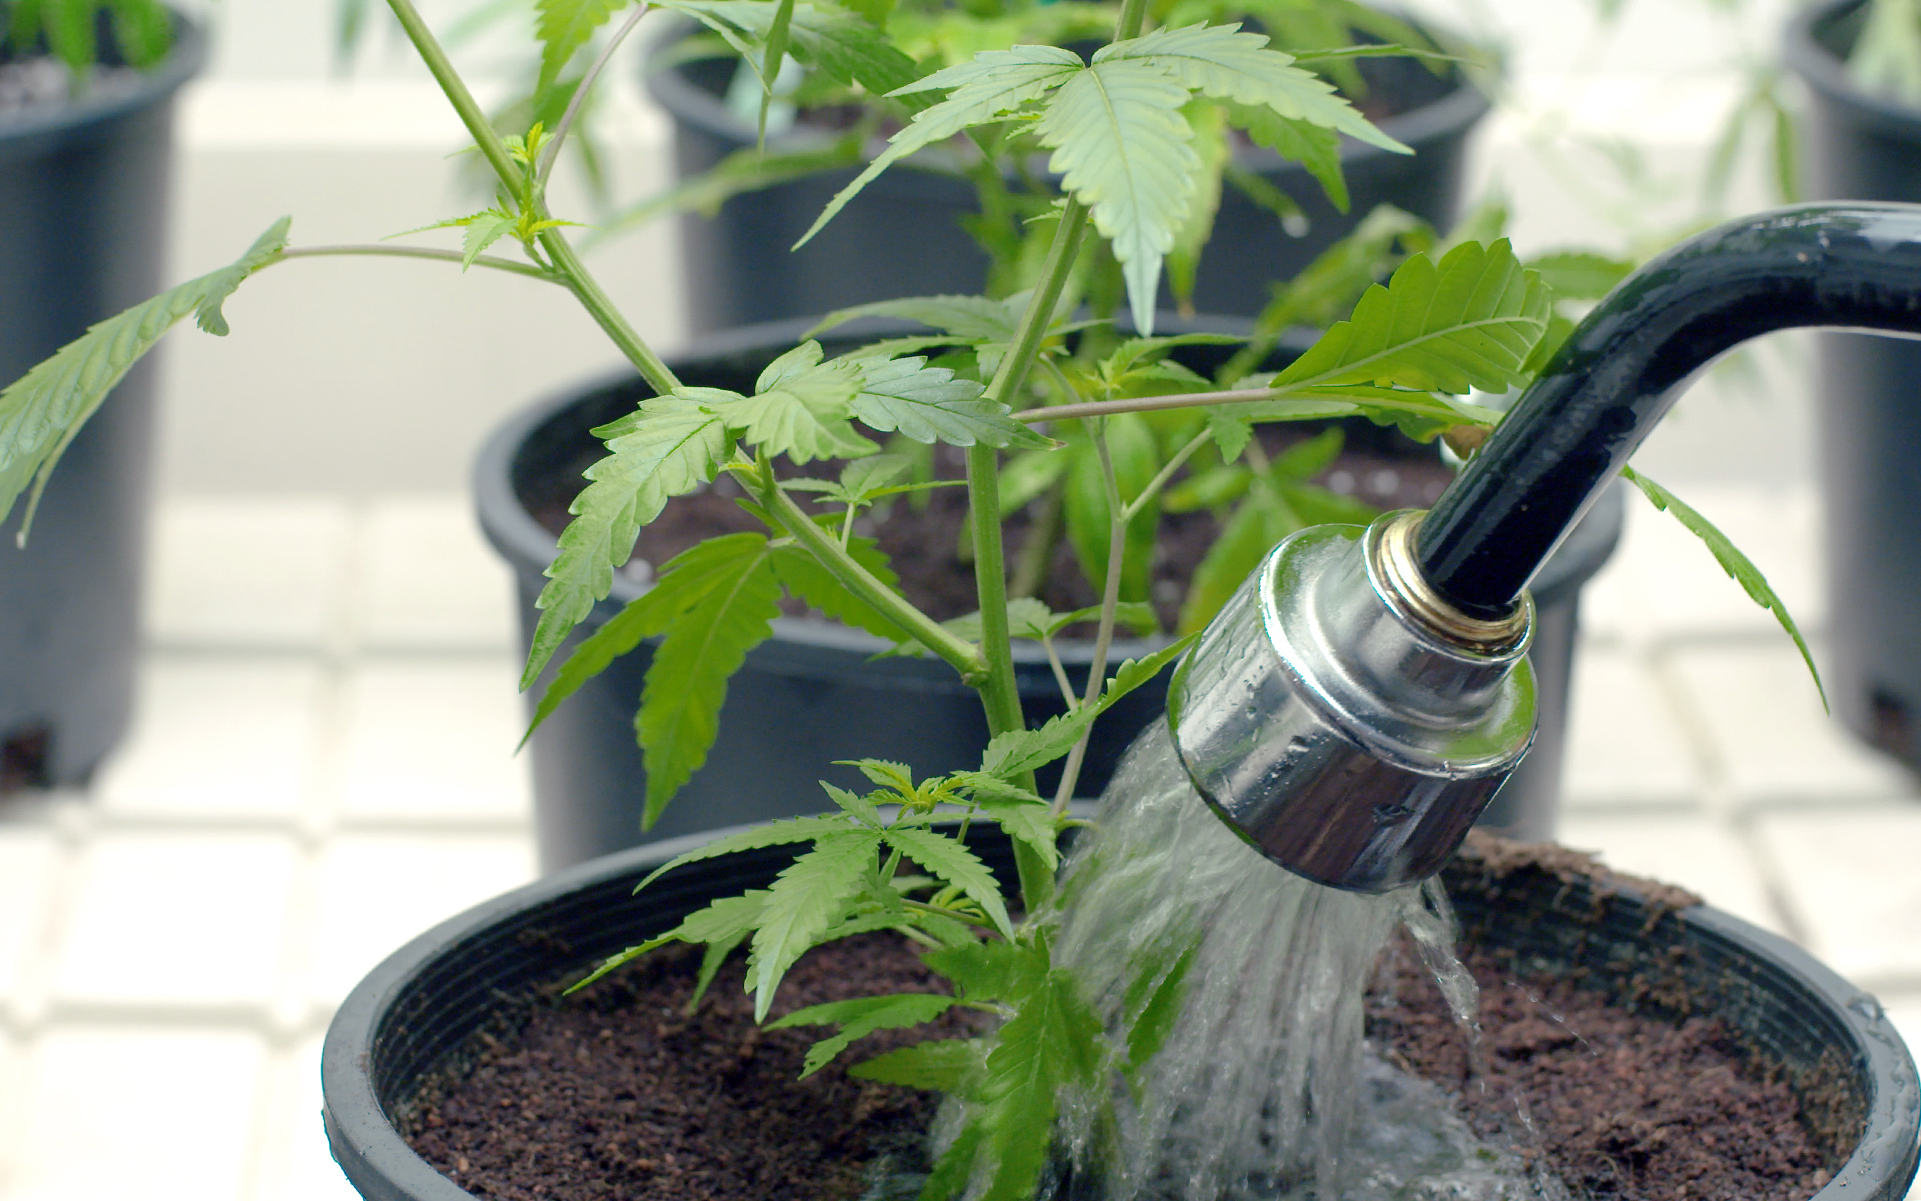 How to Tell If a Cannabis Plant Needs Watering